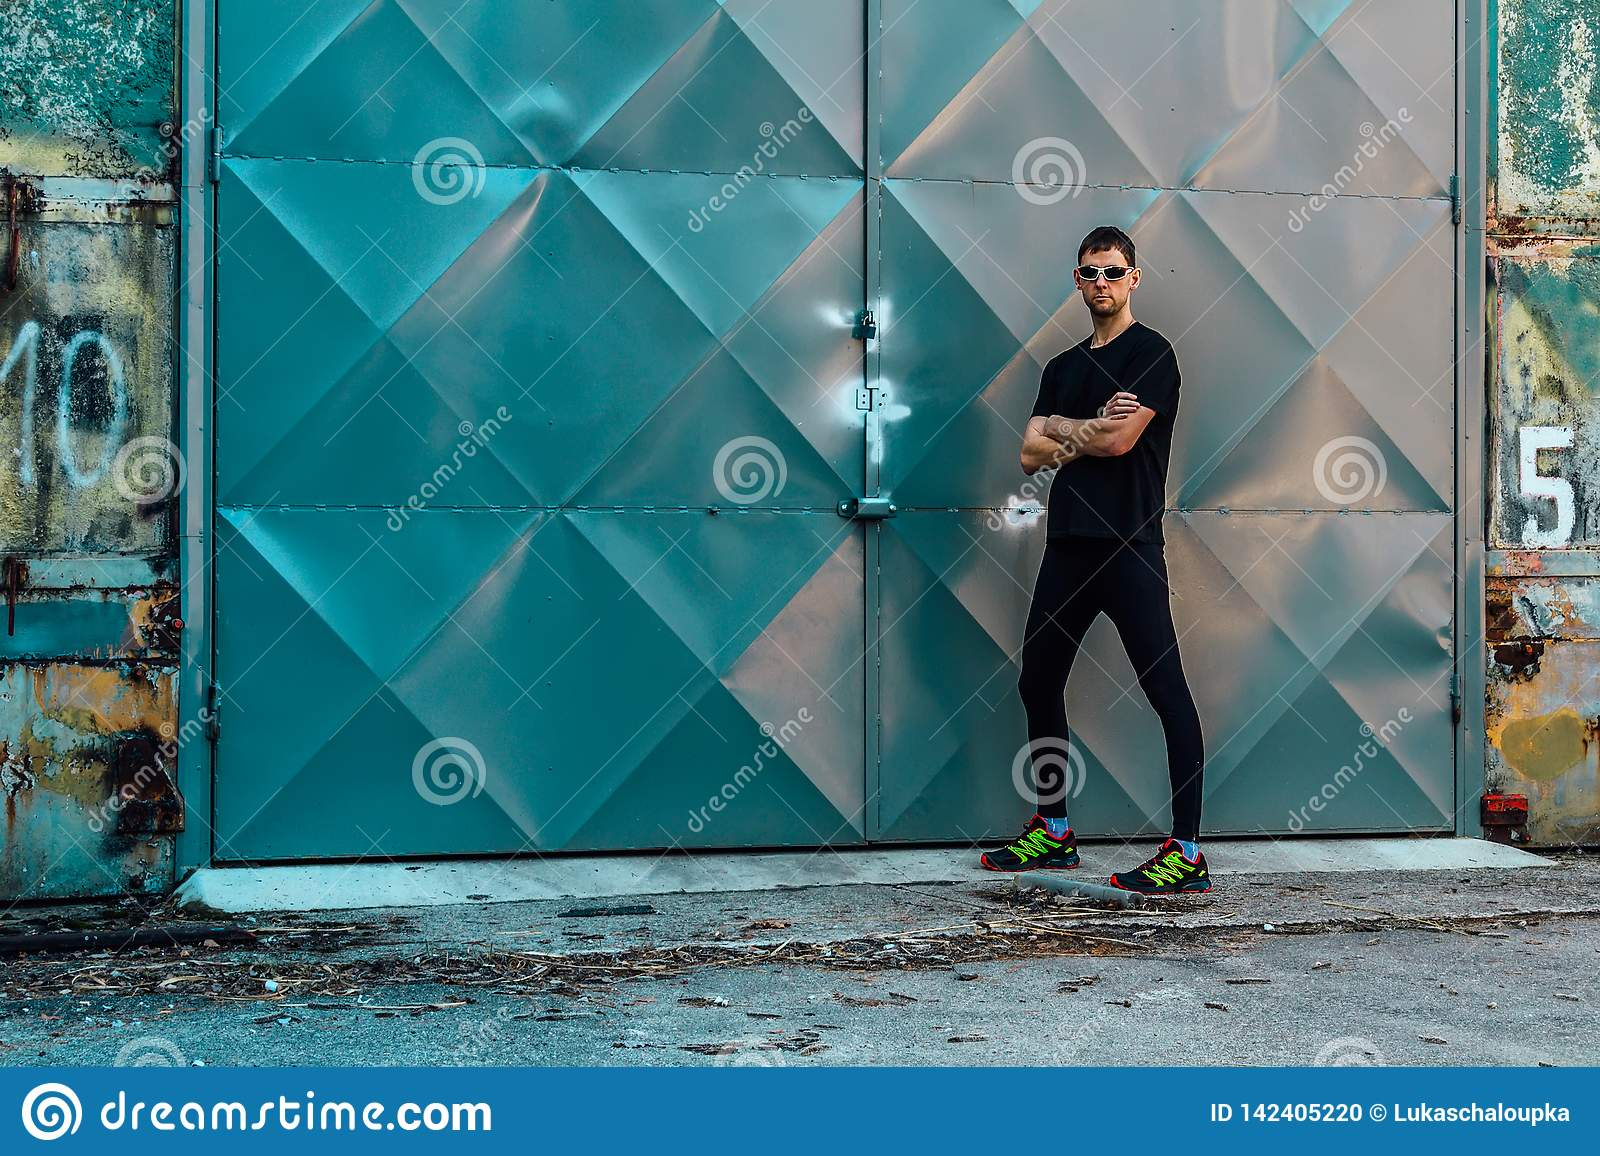 Handsome young man runner standing in front of door with sunglasses. Fitness, workout, sport, lifestyle concept